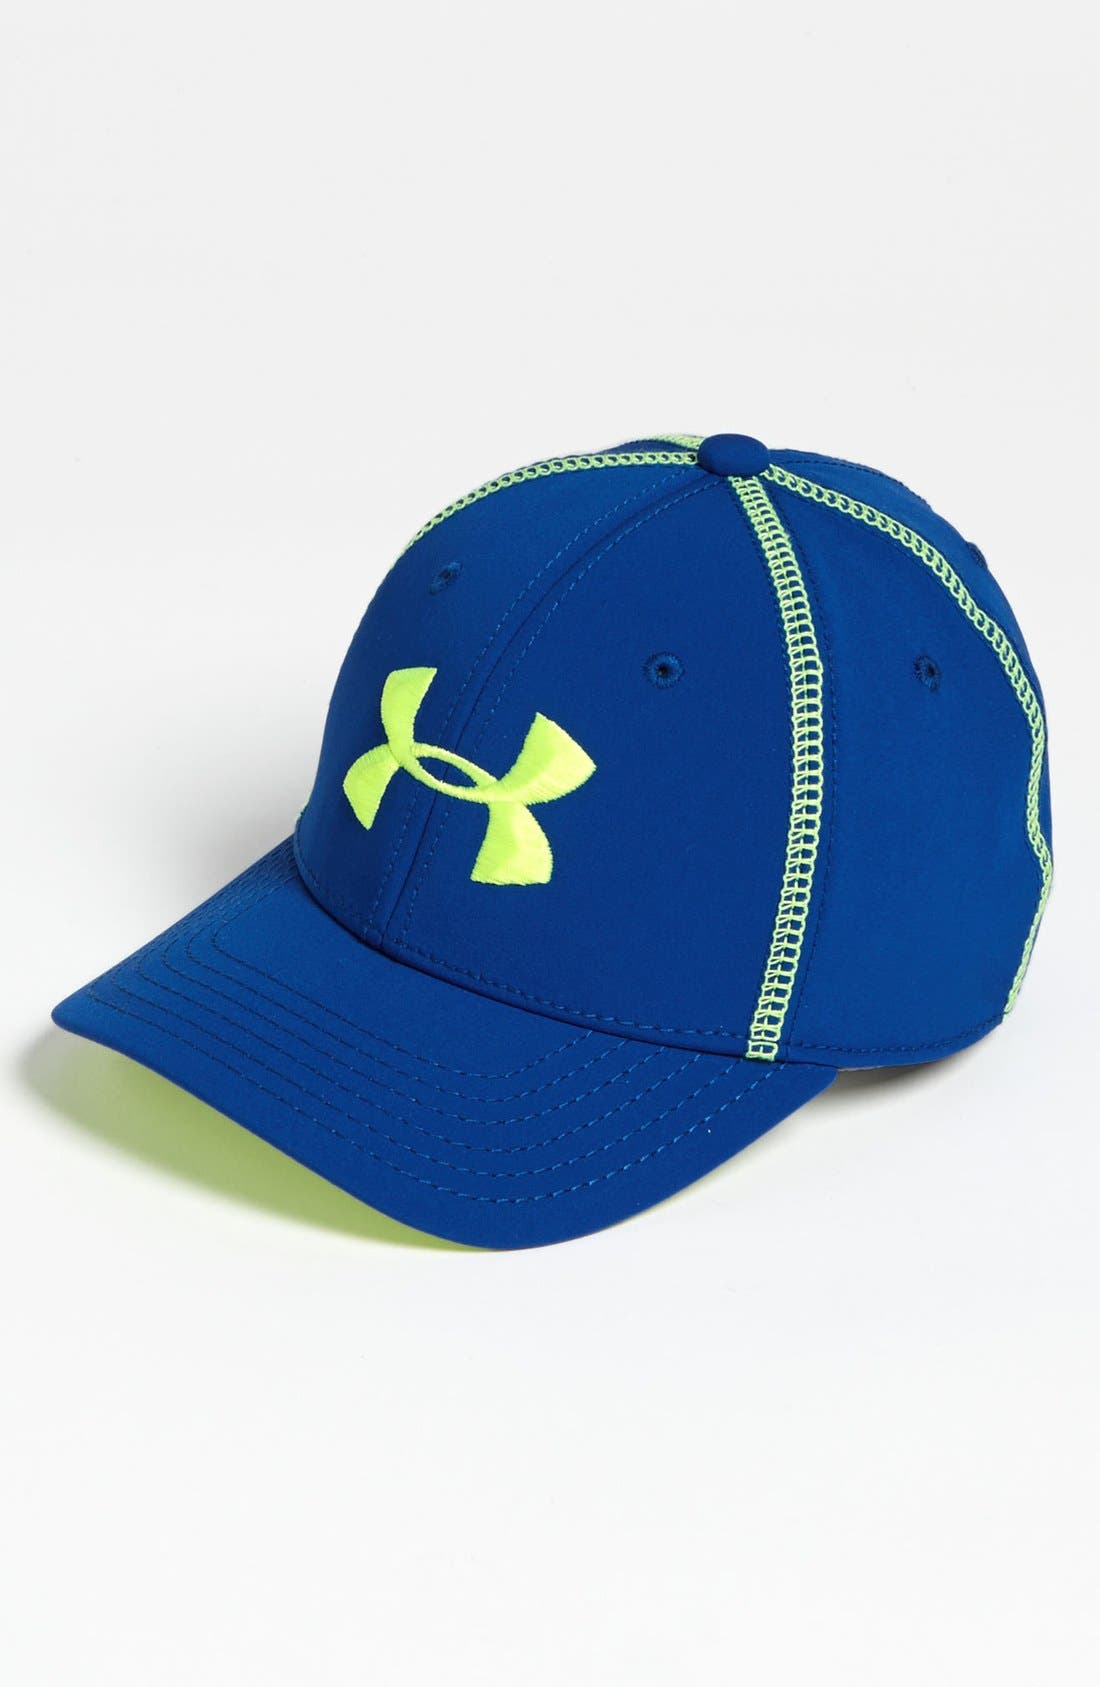 Main Image - Under Armour 'Catalyst' Hat (Boys)